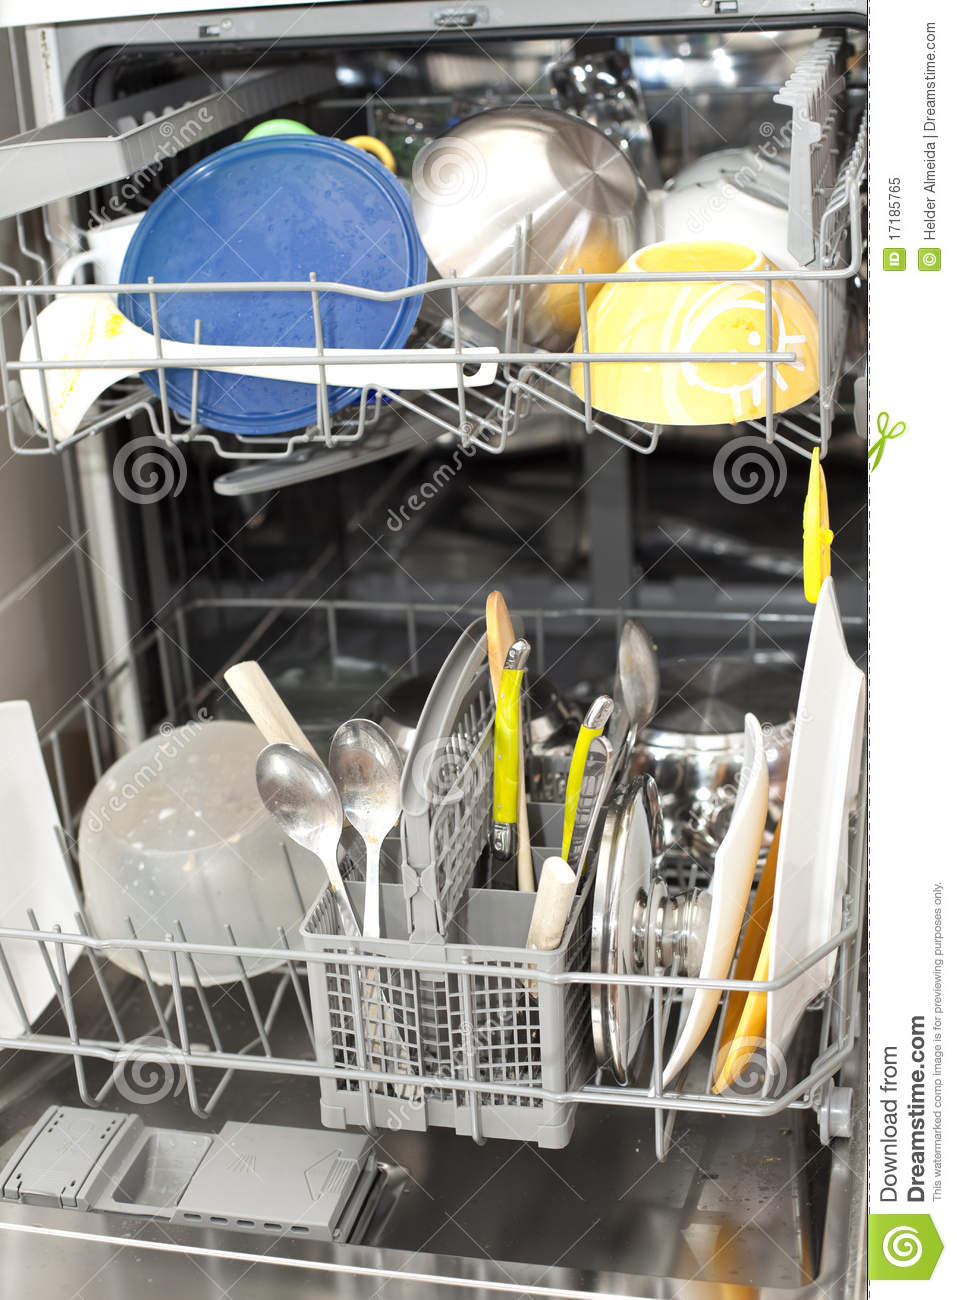 Dirty Dishes In The Dishwasher Stock Image - Image: 17185765